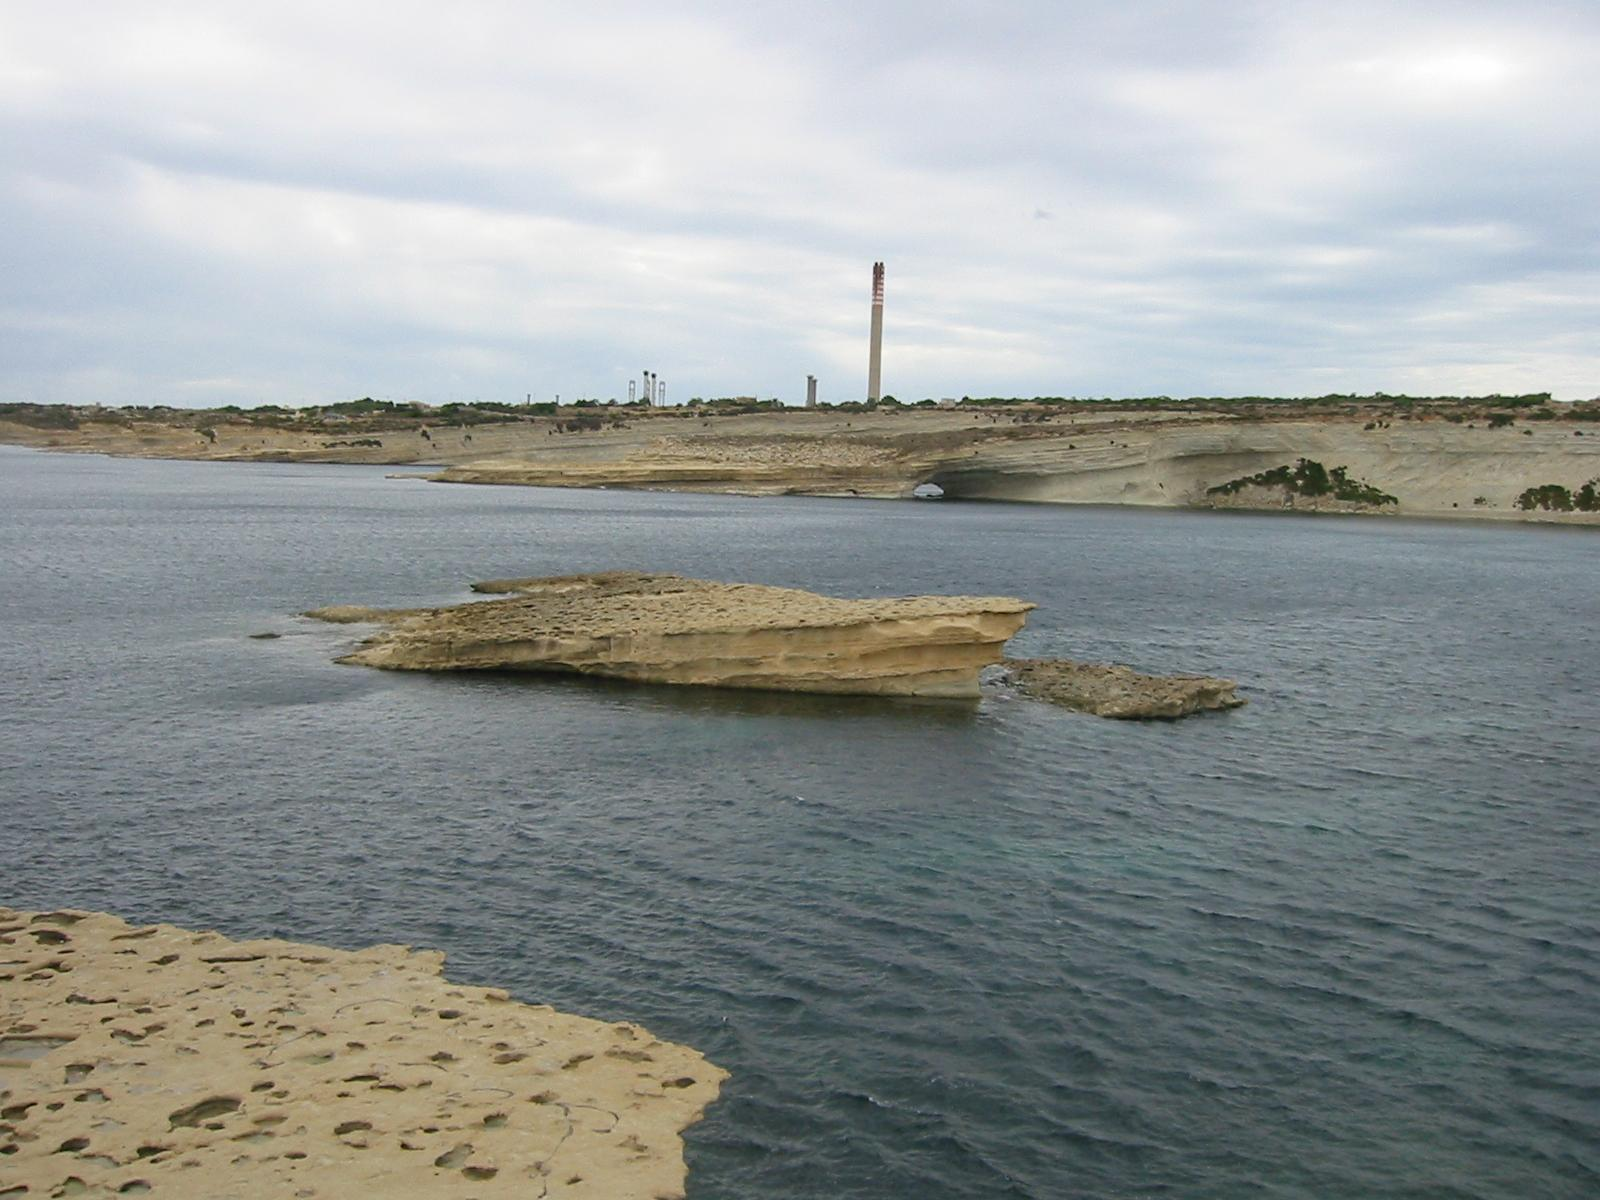 Small island at Xrobb Il-Ghagin